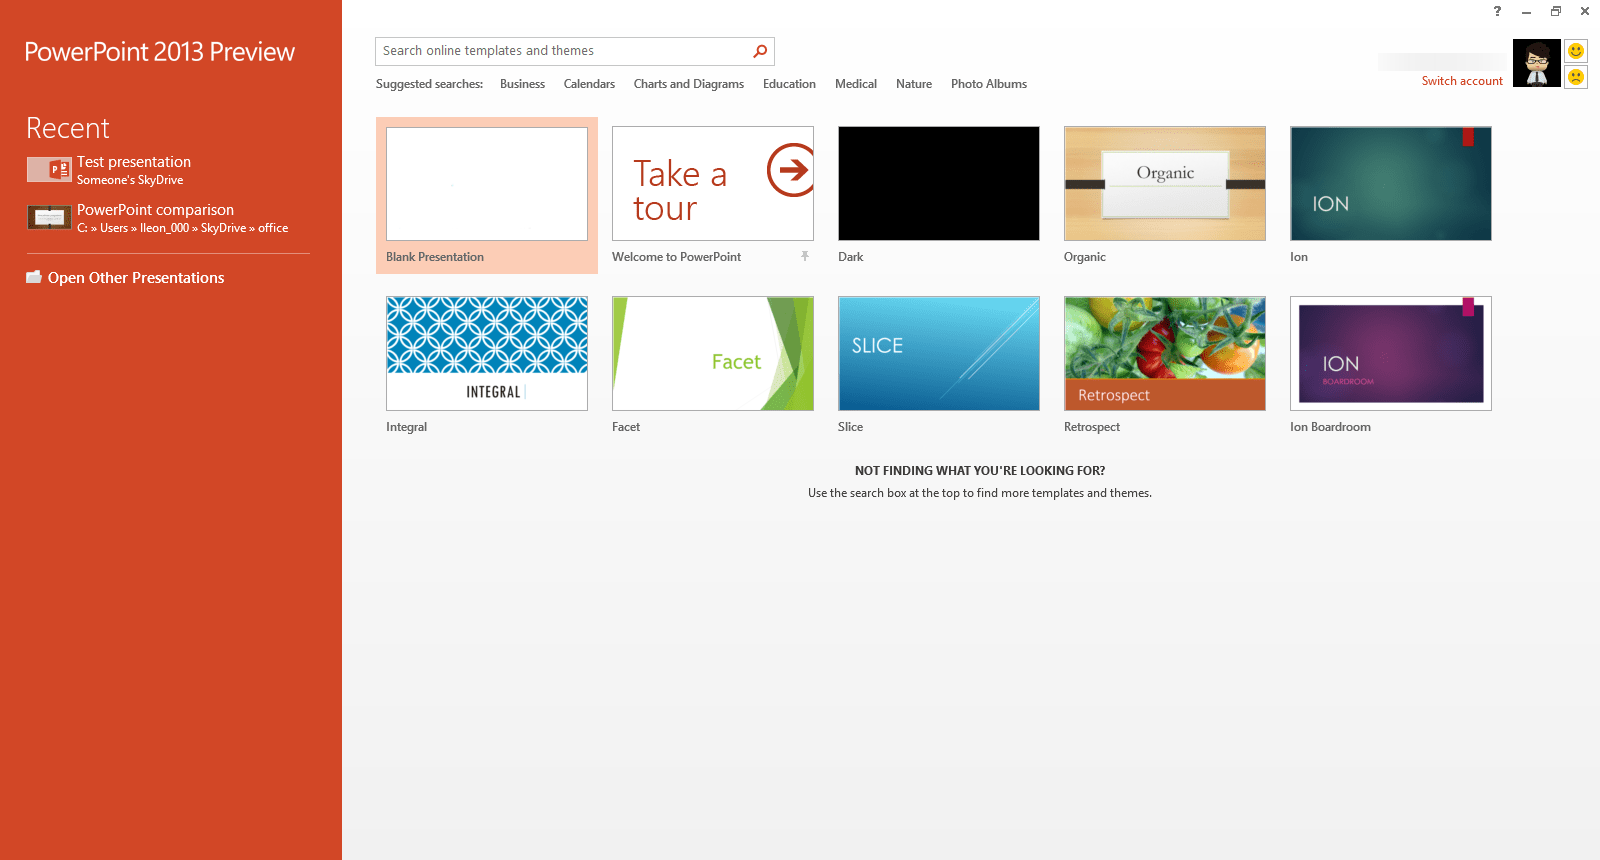 Microsoft powerpoint 2013 download pros toneelgroepblik